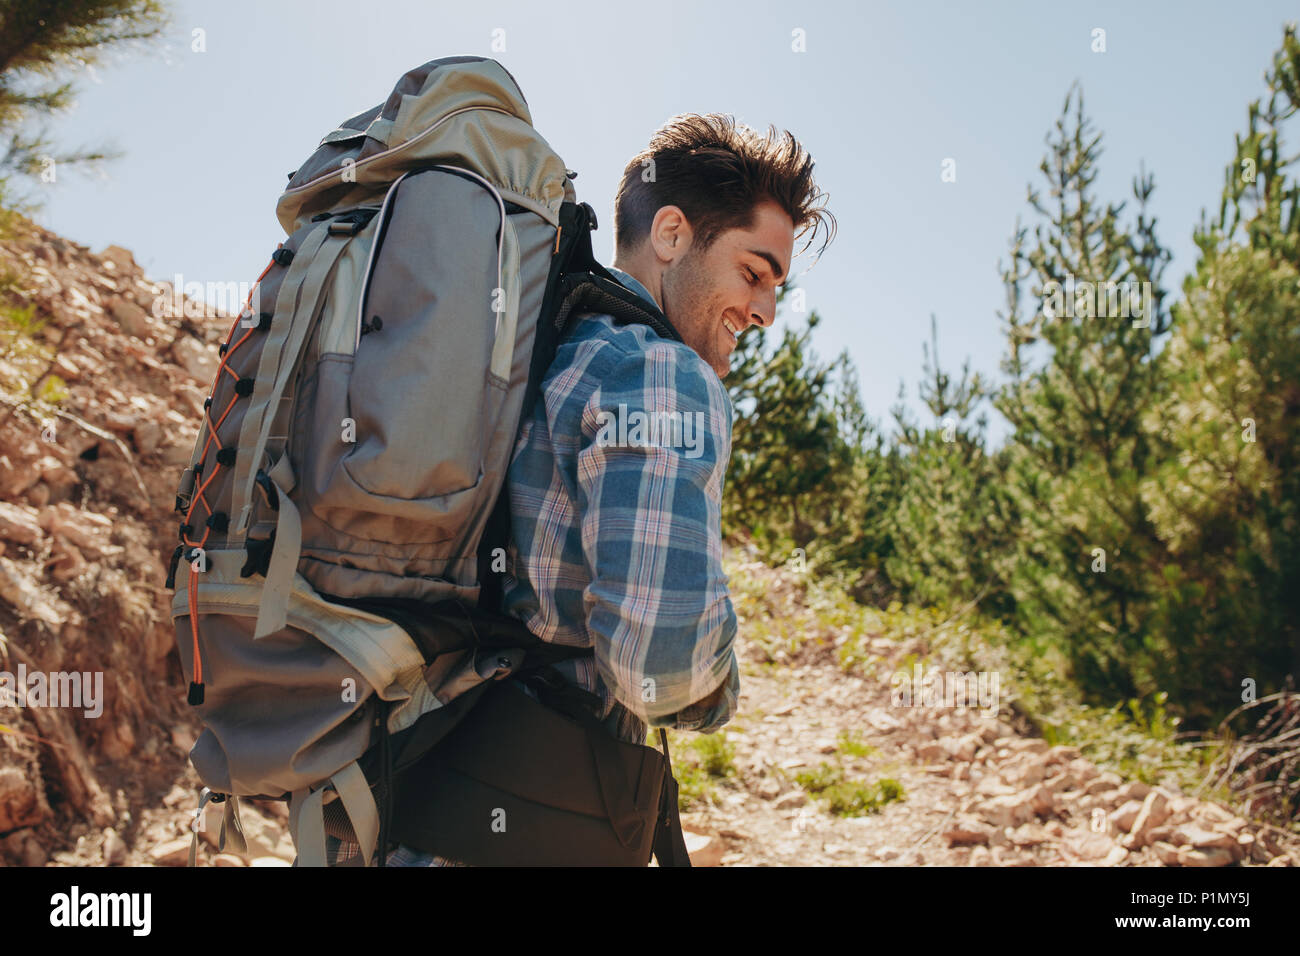 Rear view shot of smiling young guy with backpack hiking on mountains. Caucasian male hiker trekking on mountain. - Stock Image